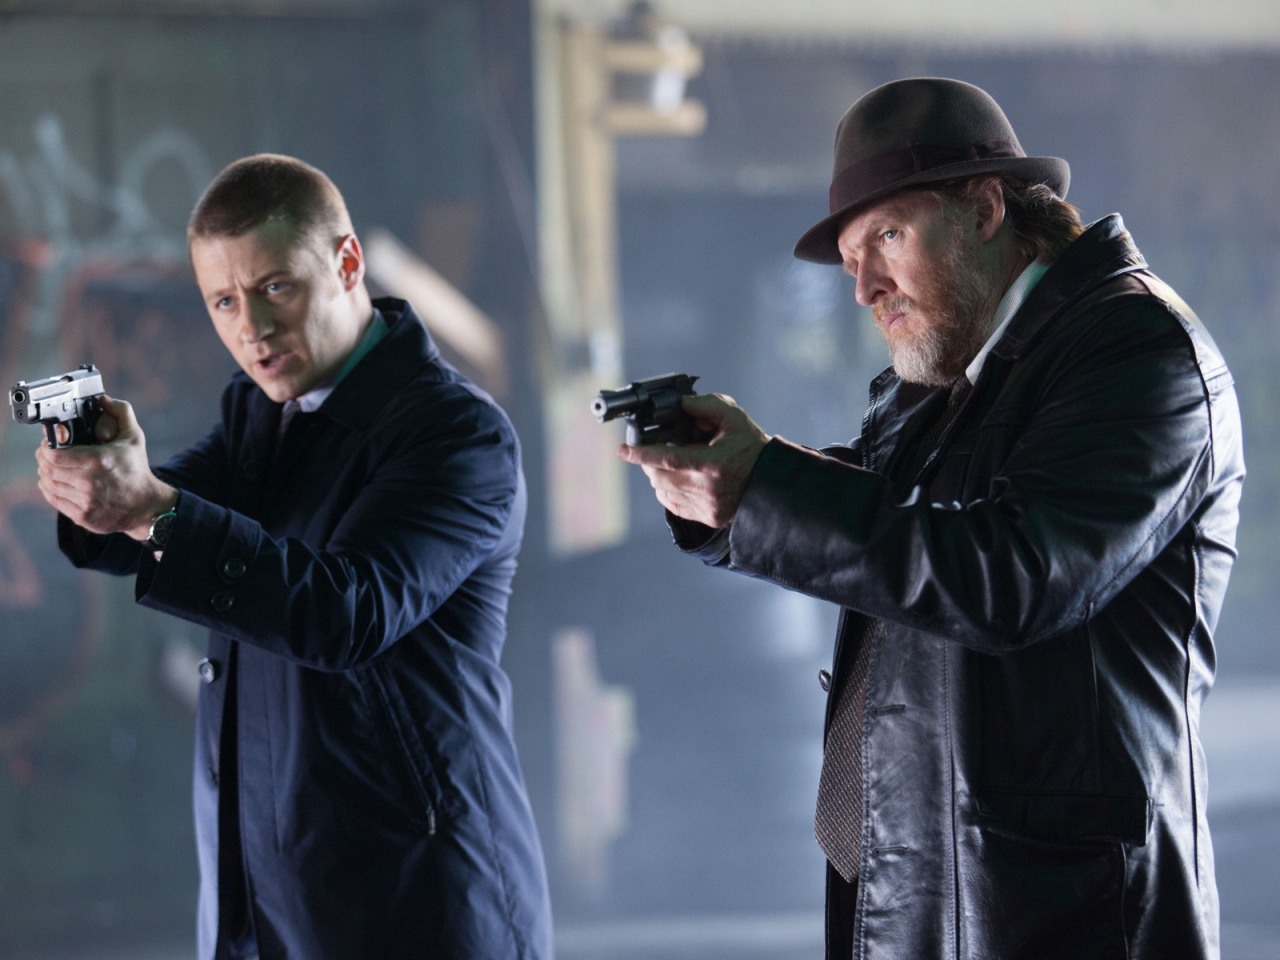 Gotham Harvey and James for 1280 x 960 resolution